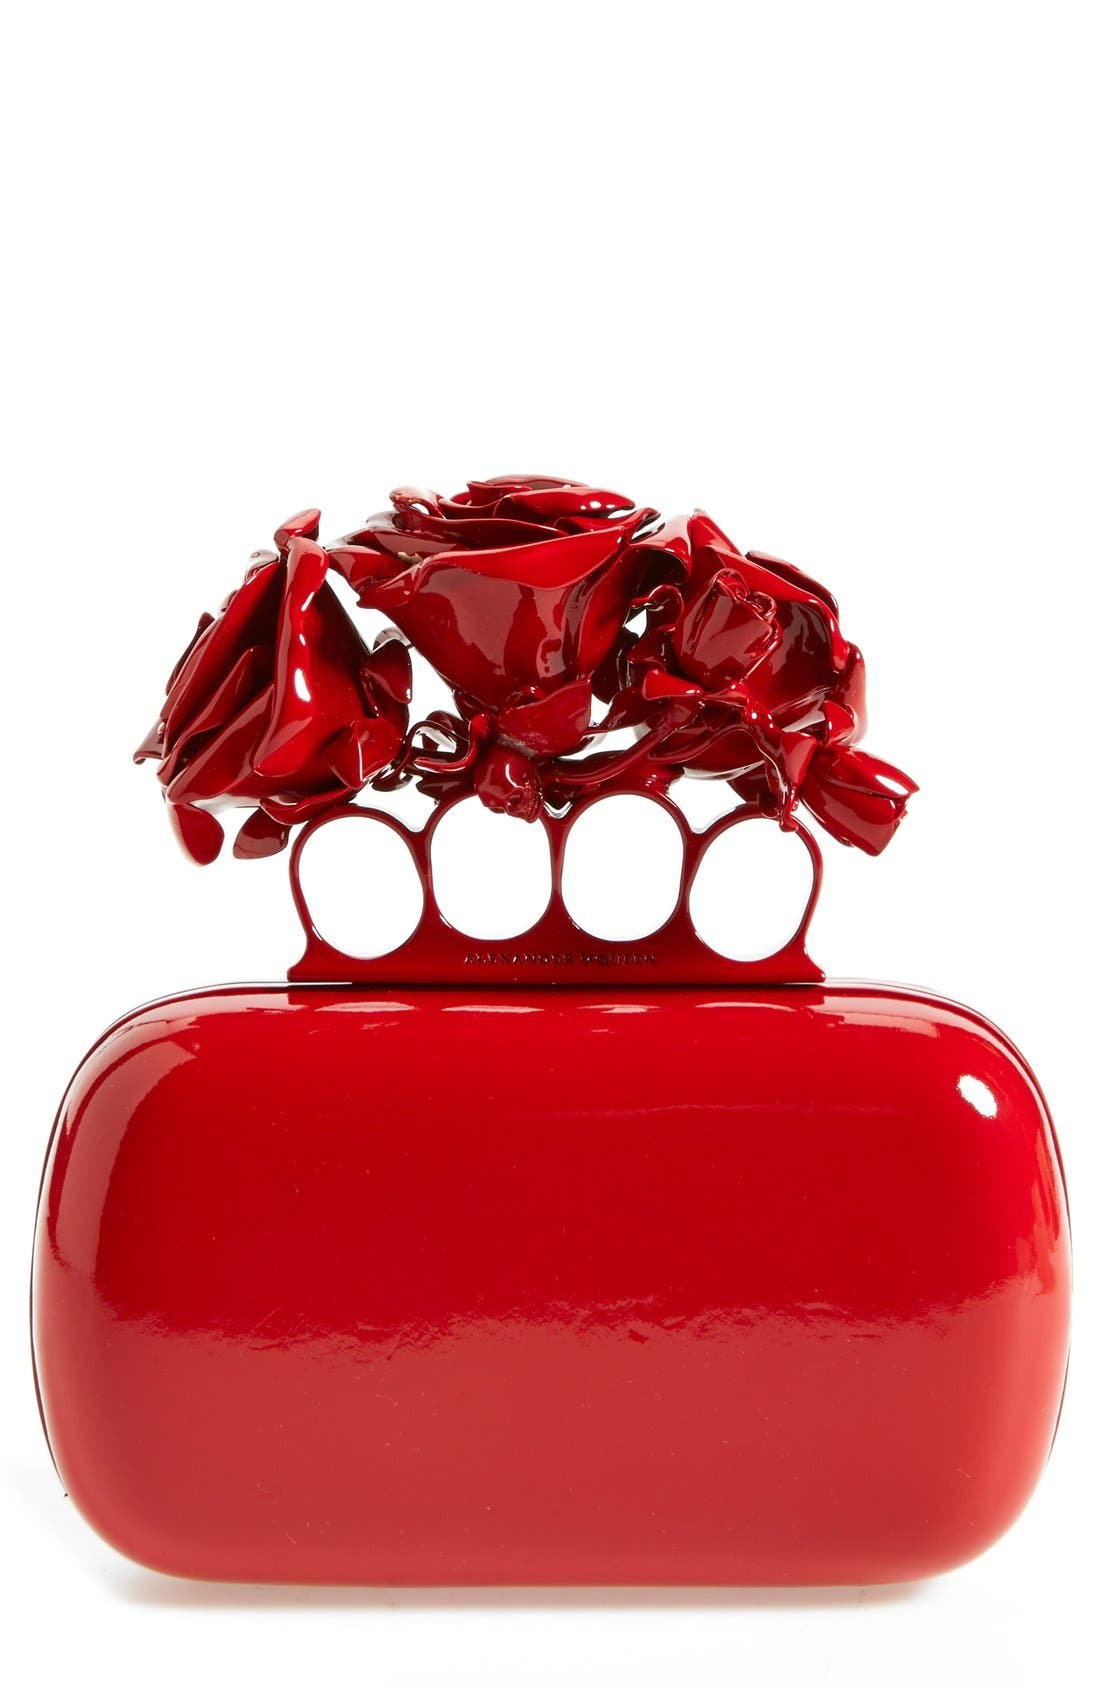 Alternate Image 1 Selected - Alexander McQueen 'Lacquered Rose' Knuckle Box Clutch